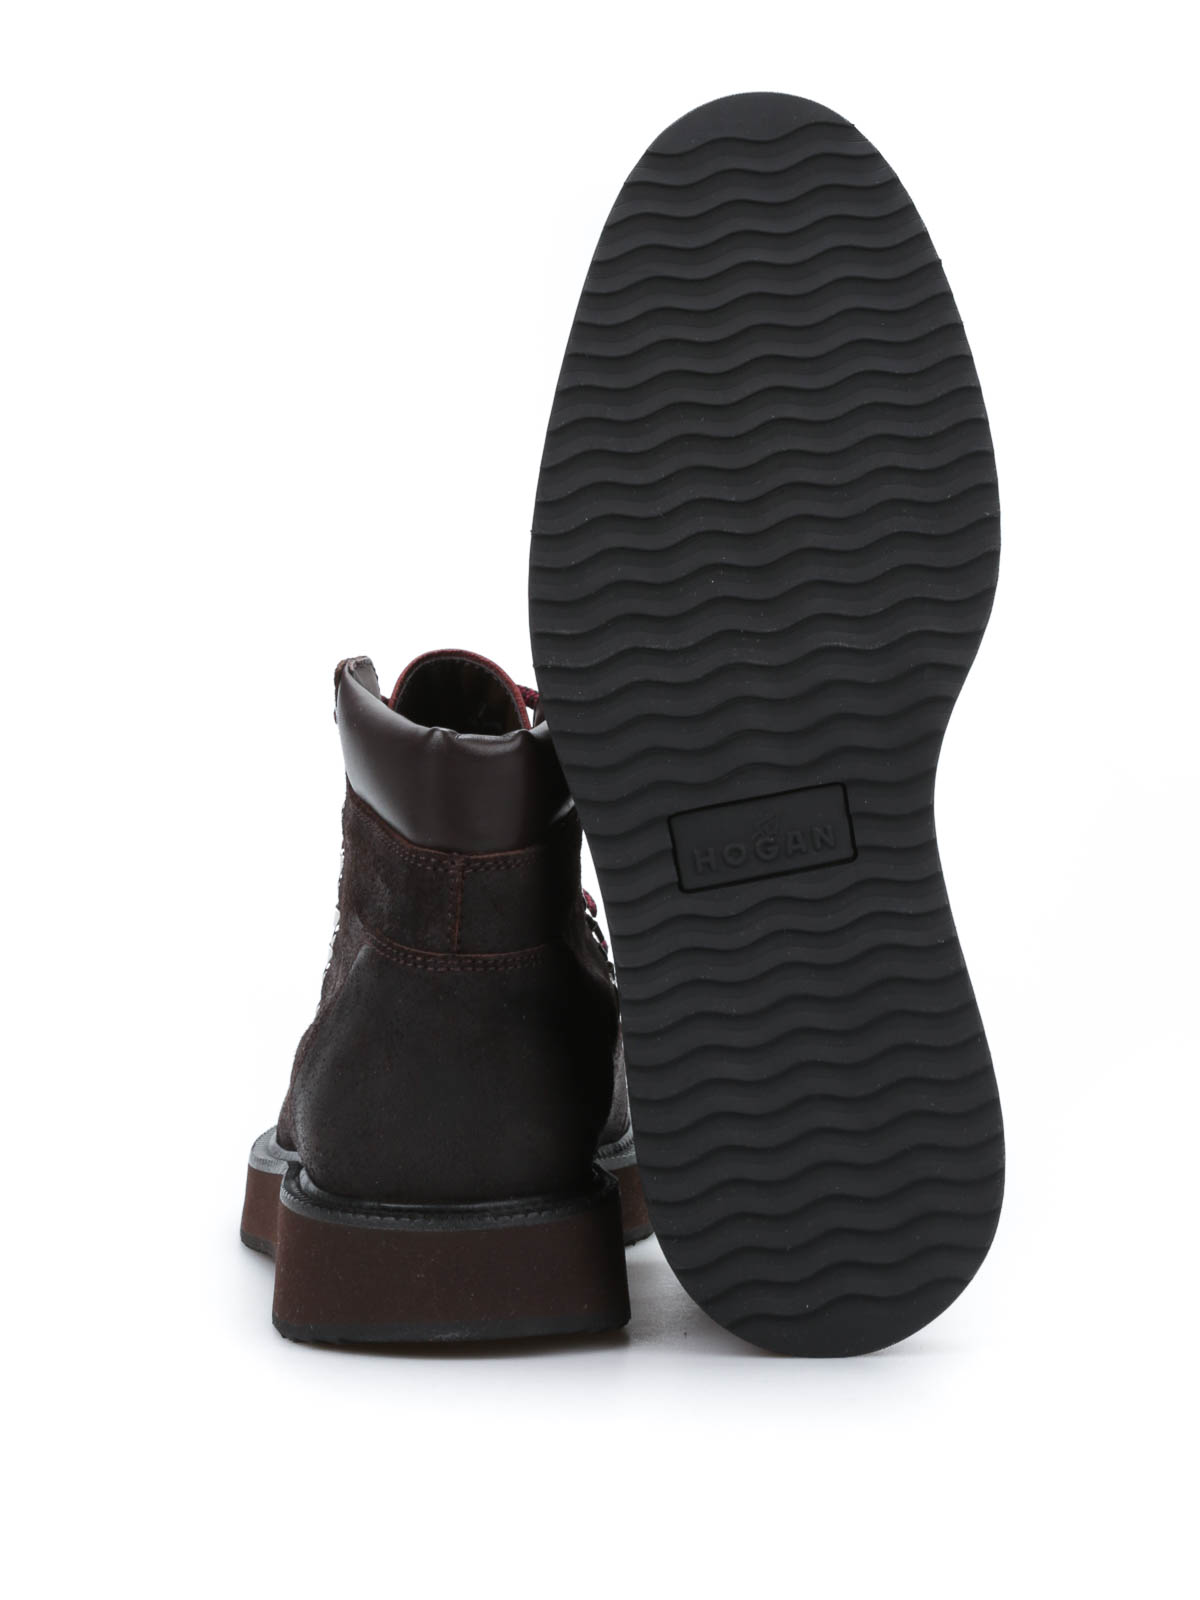 Ankle boots Hogan - H271 Route hiking boot s - HXM2710S6309PJ697E